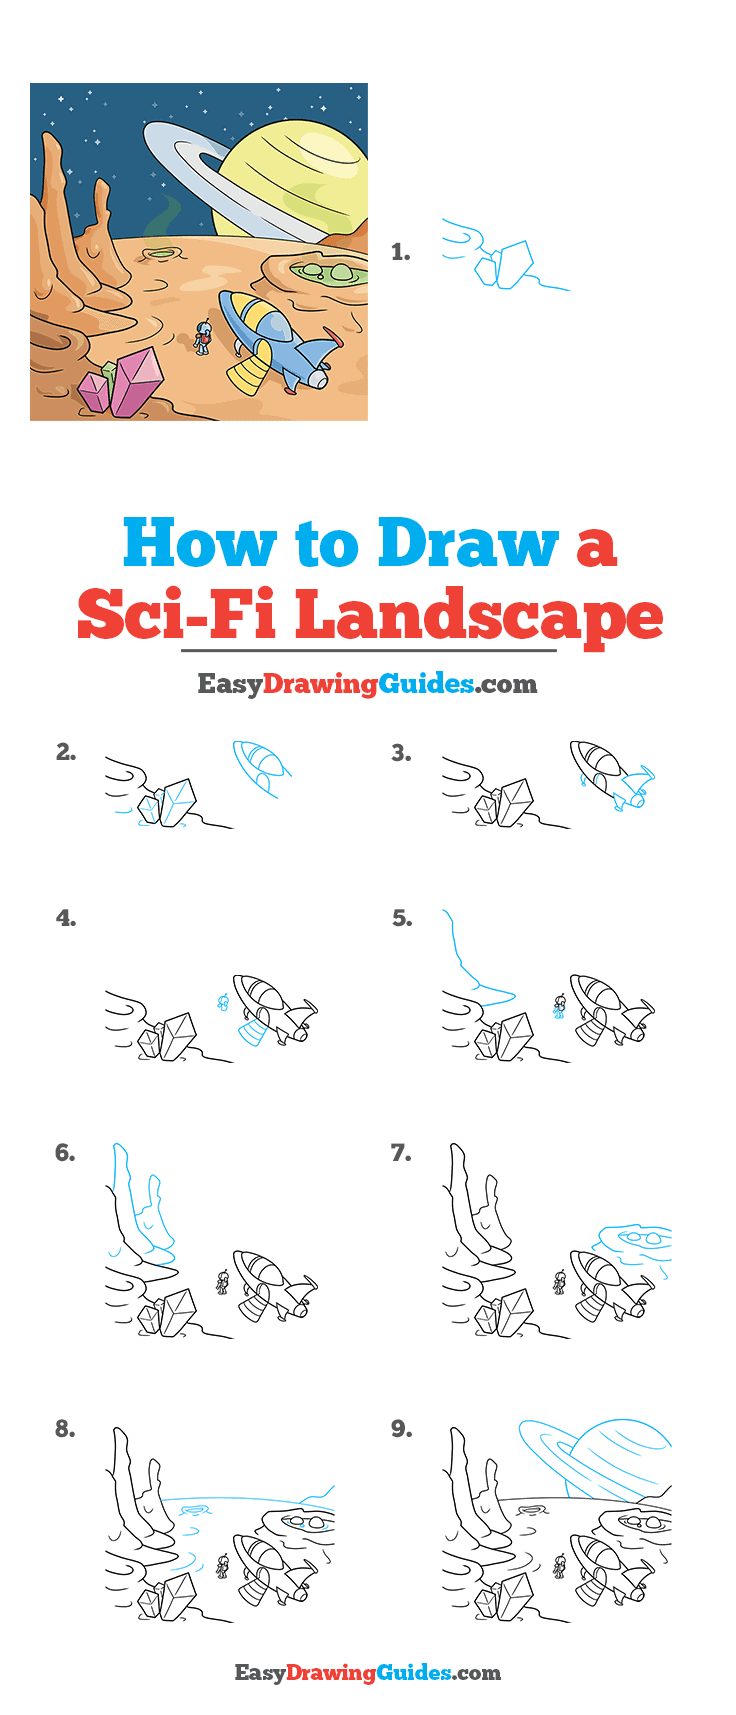 How to Draw a Sci-Fi Landscape Step by Step Tutorial Image